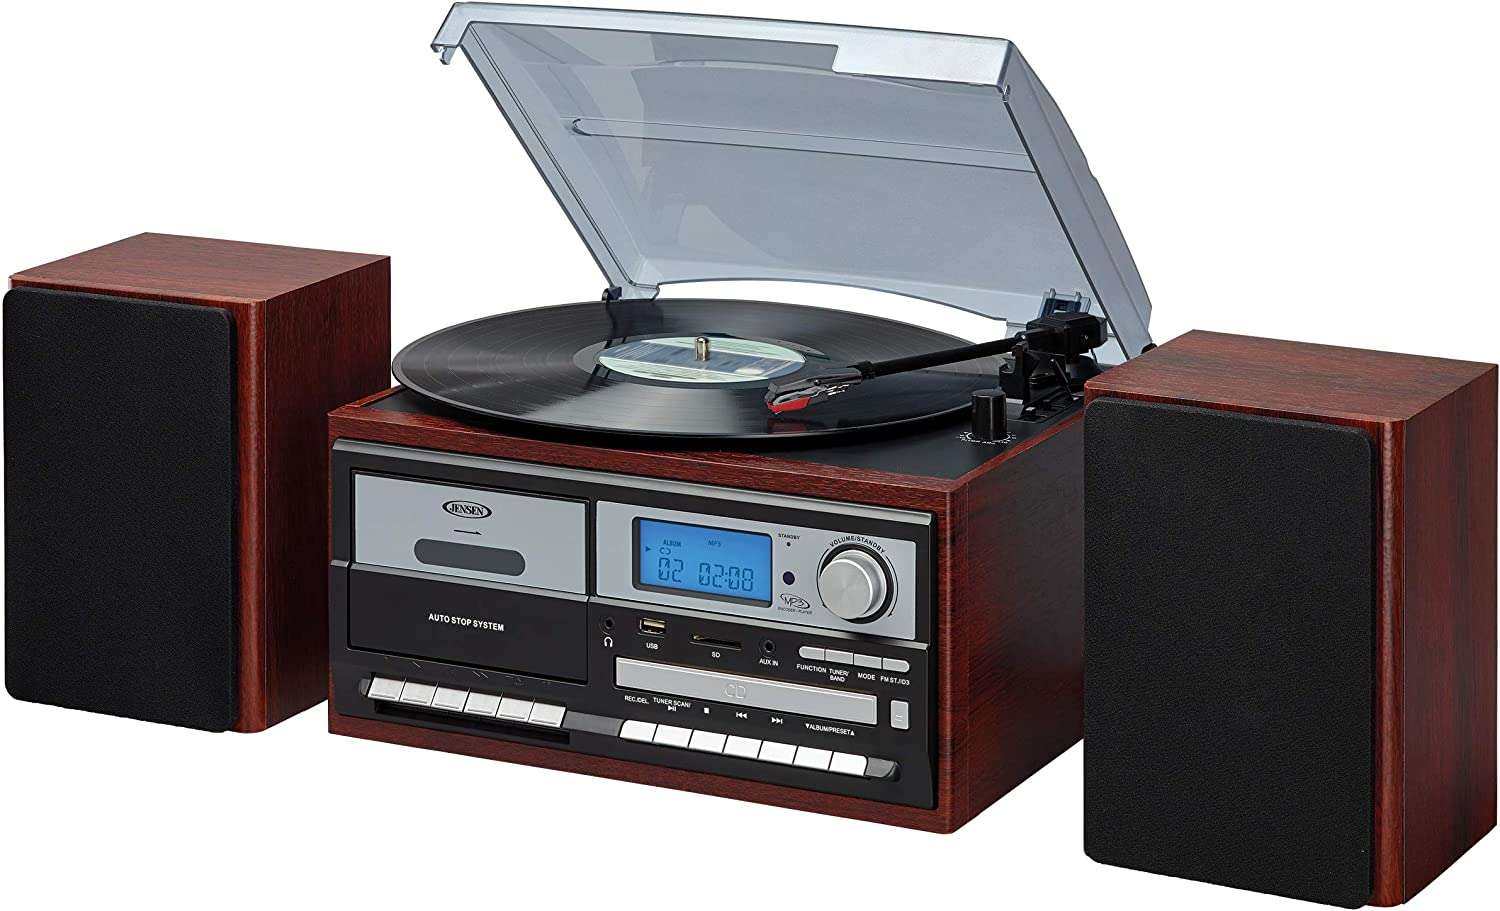 JENSEN JTA-575 3-Speed Stereo Turntable MP3 CD System with Cassette and AM/FM Stereo Radio